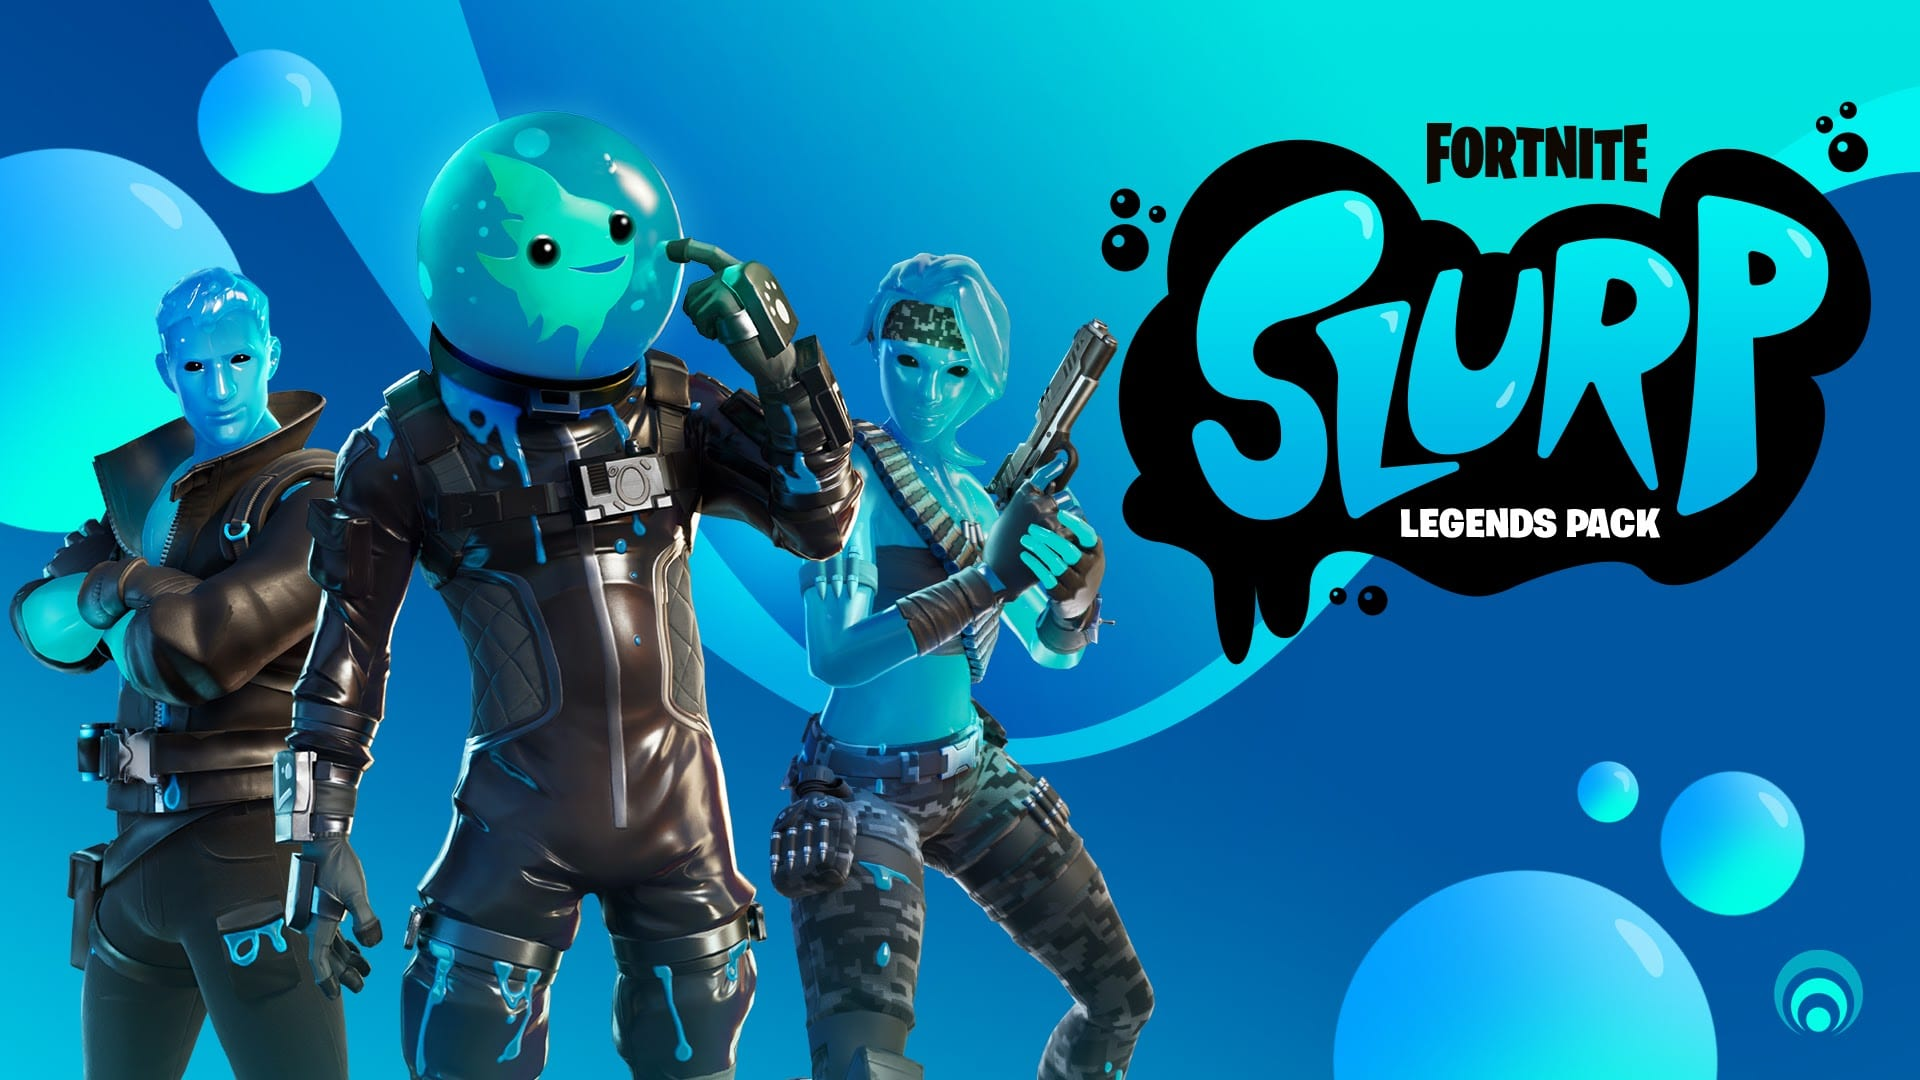 Fortnite Slurp Legends Pack